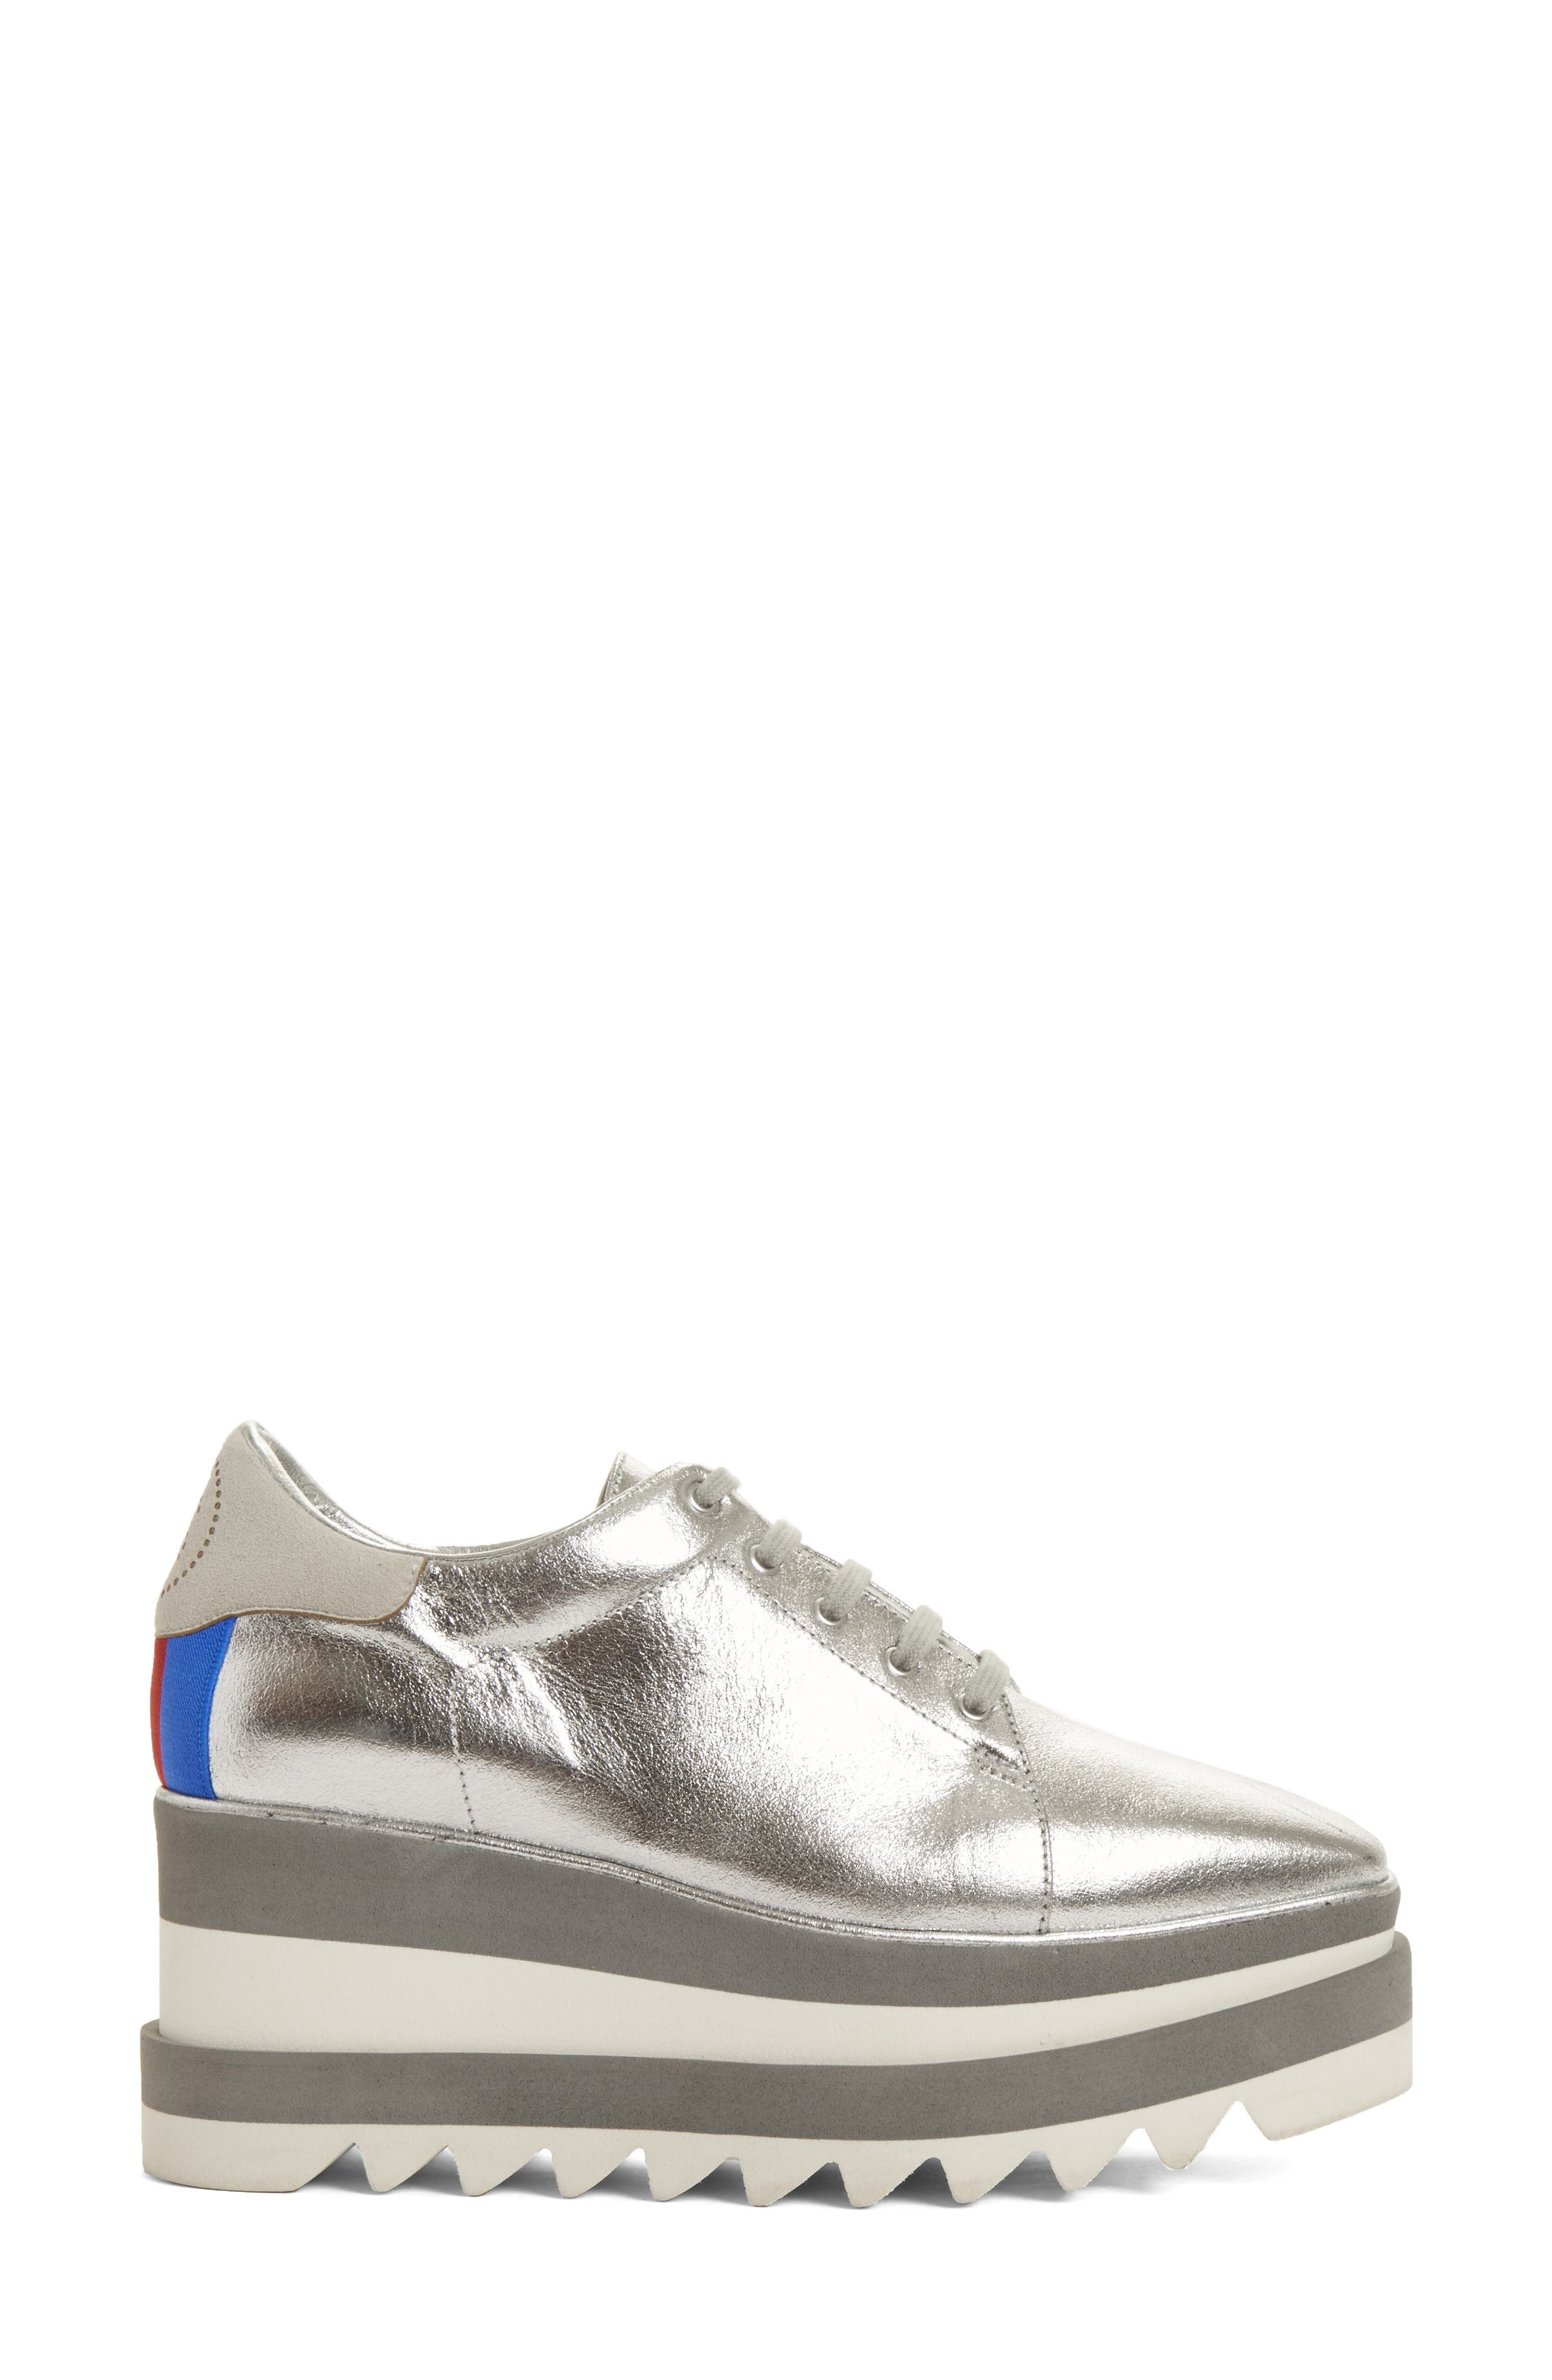 Elyse Platform Sneaker,                             Alternate thumbnail 3, color,                             SILVER